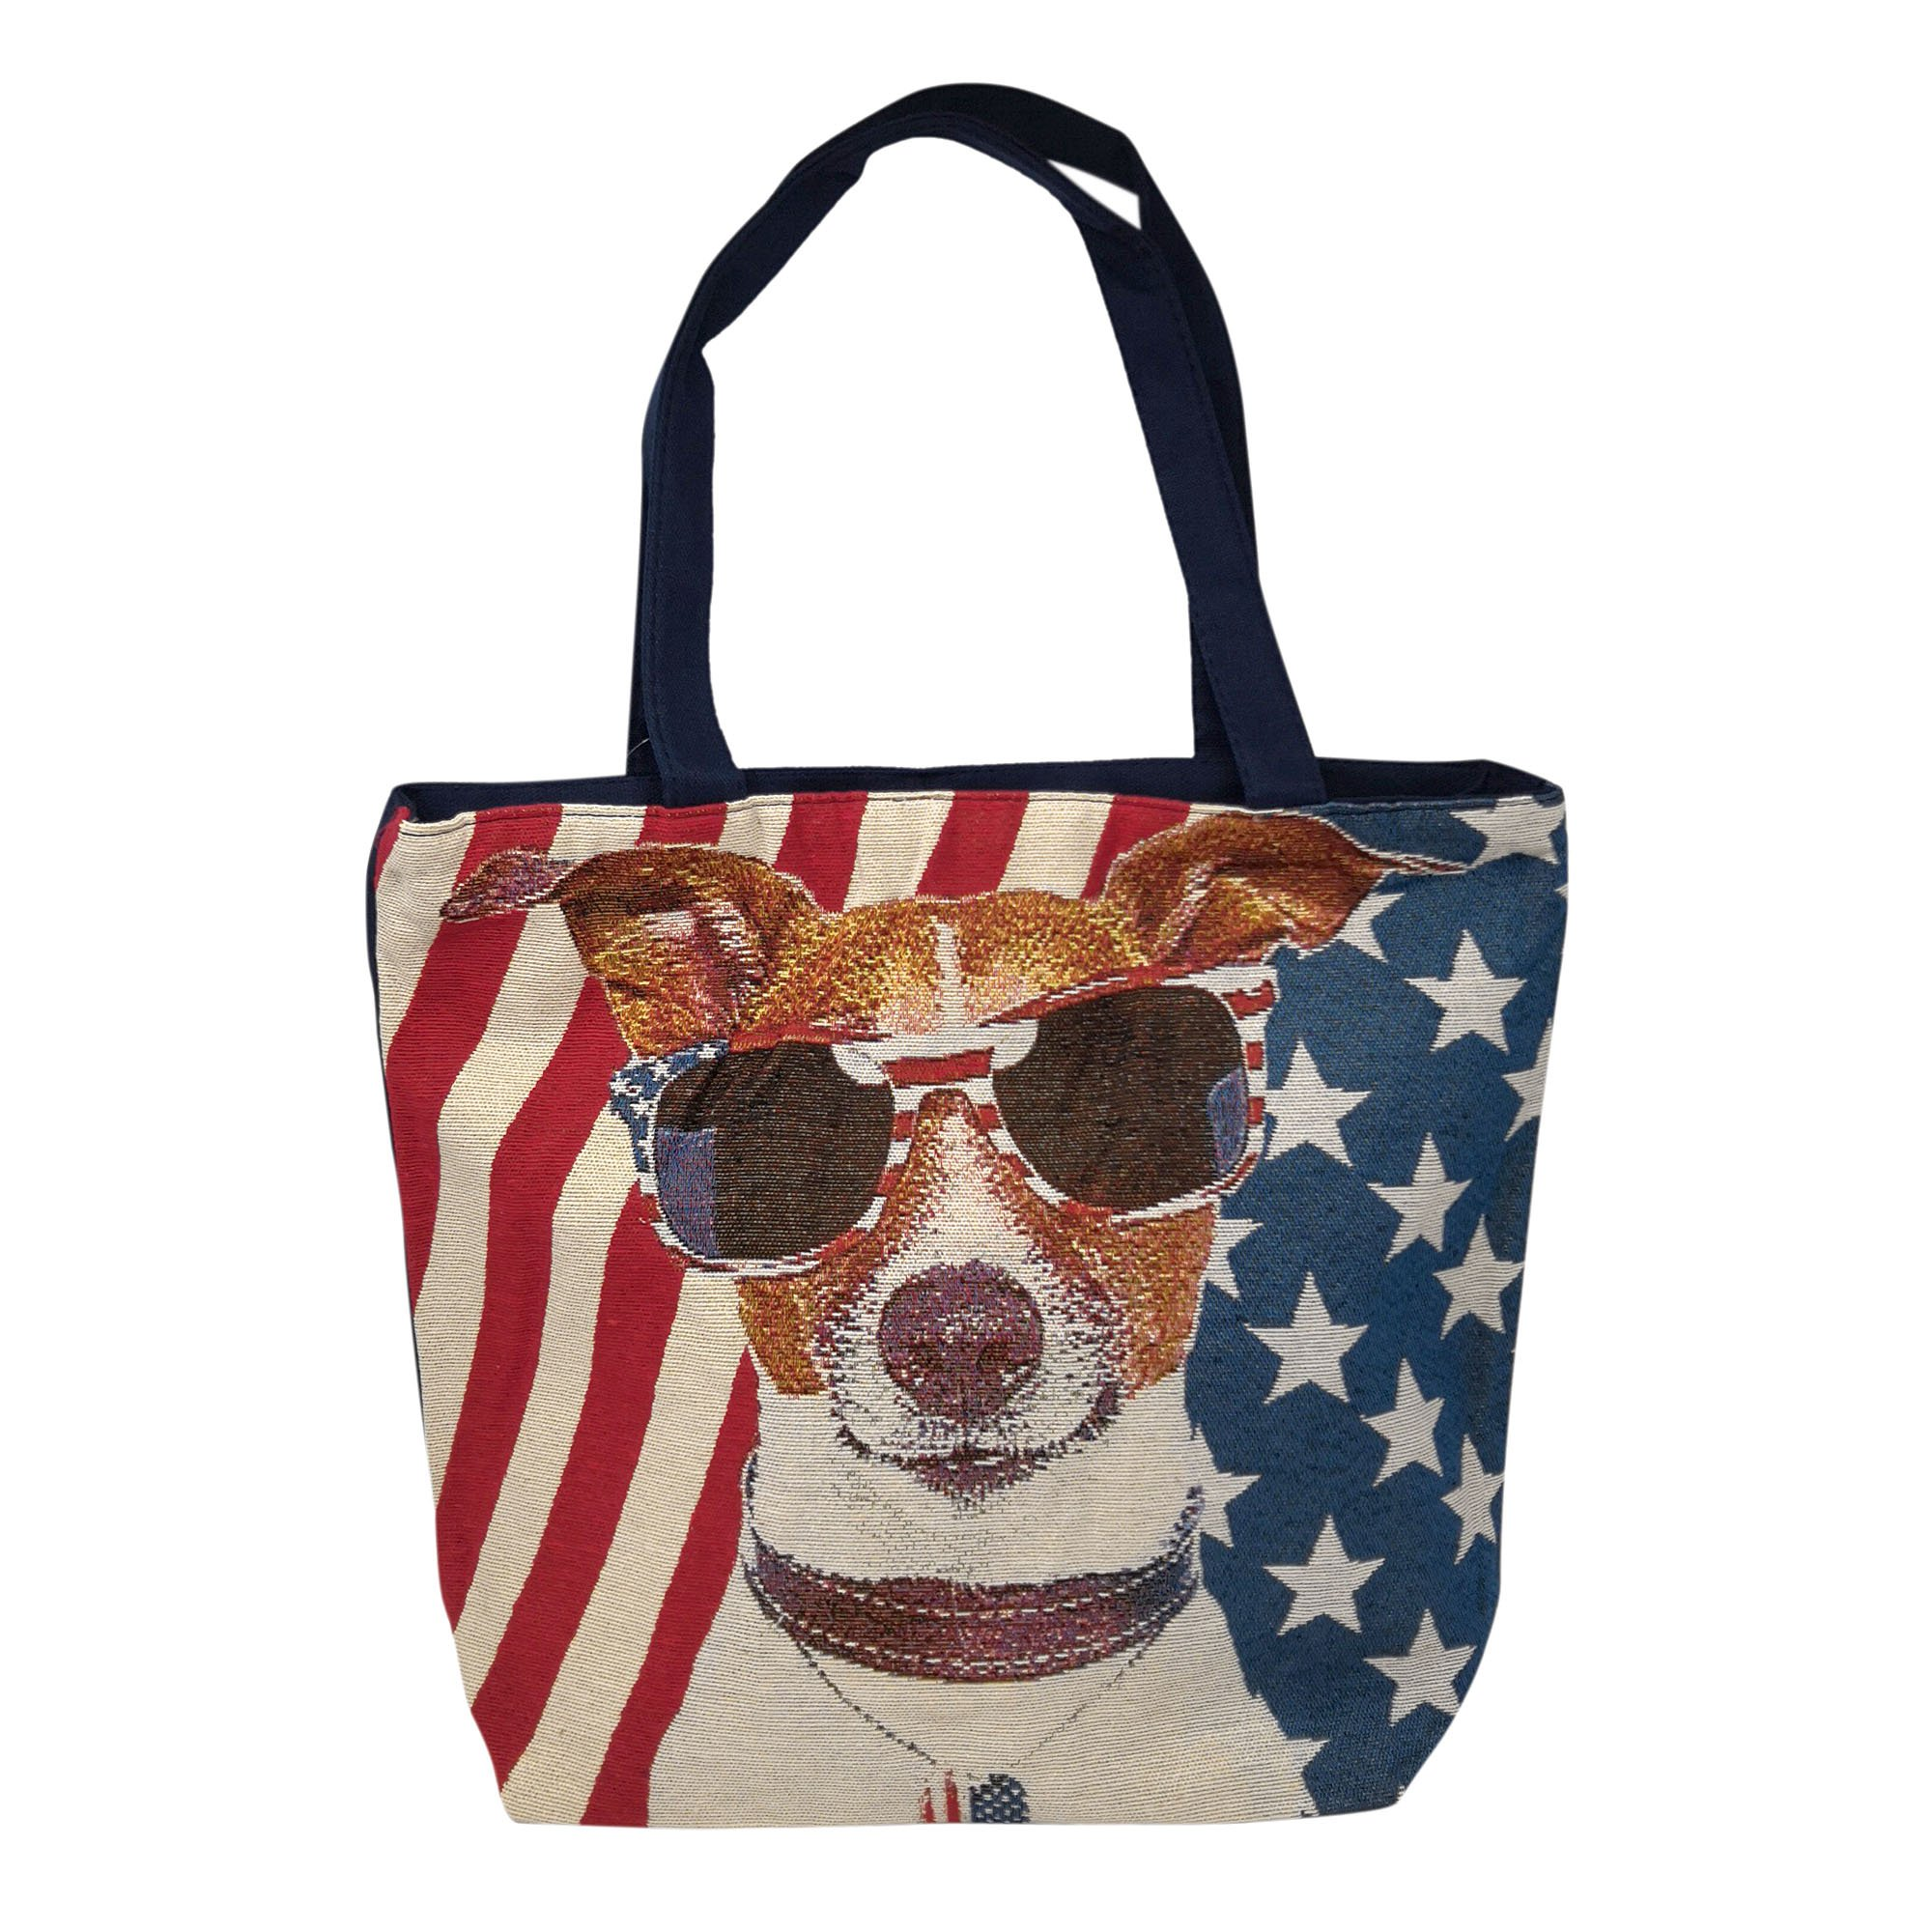 Jacquard Canvas Large Tote Bag, American Dog Jack Russell